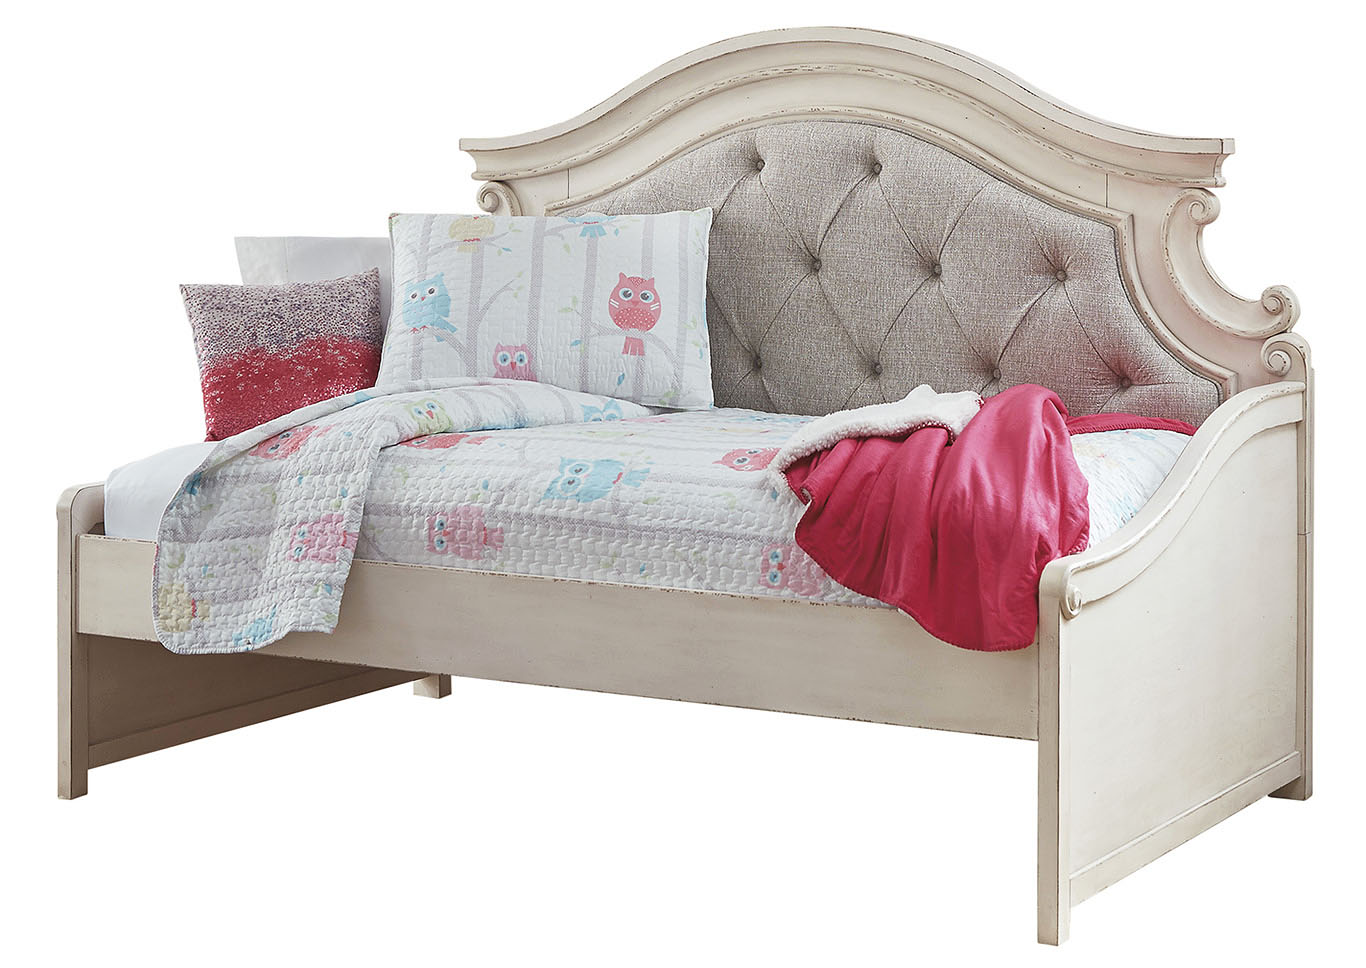 Realyn Chipped White Twin Daybed,Signature Design By Ashley